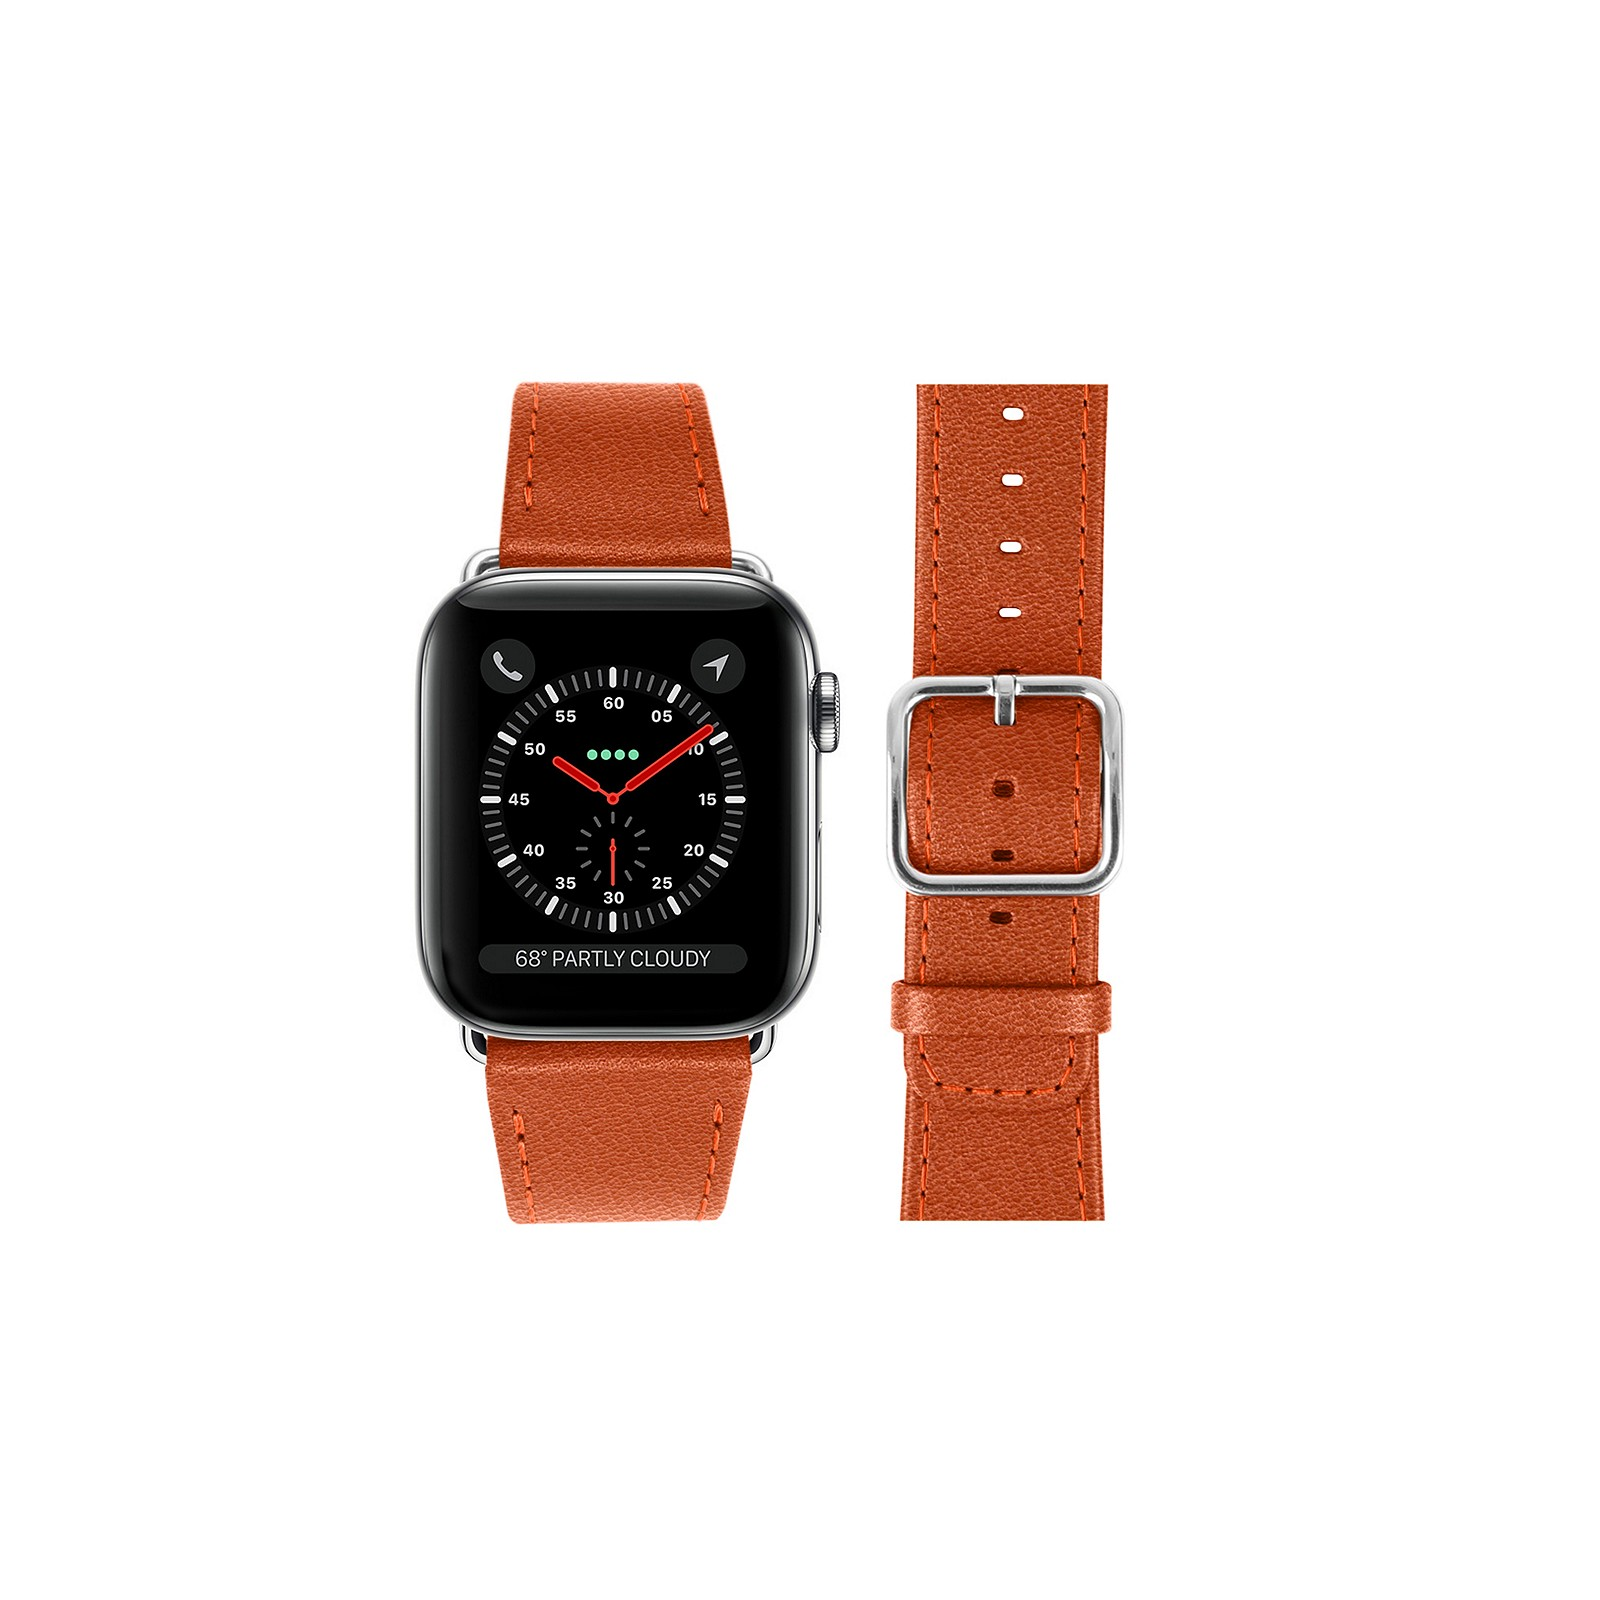 b08ad2be8 Apple watch band 42 mm Orange - Goat Leather Apple watch band 42 mm Orange  - Goat Leather 